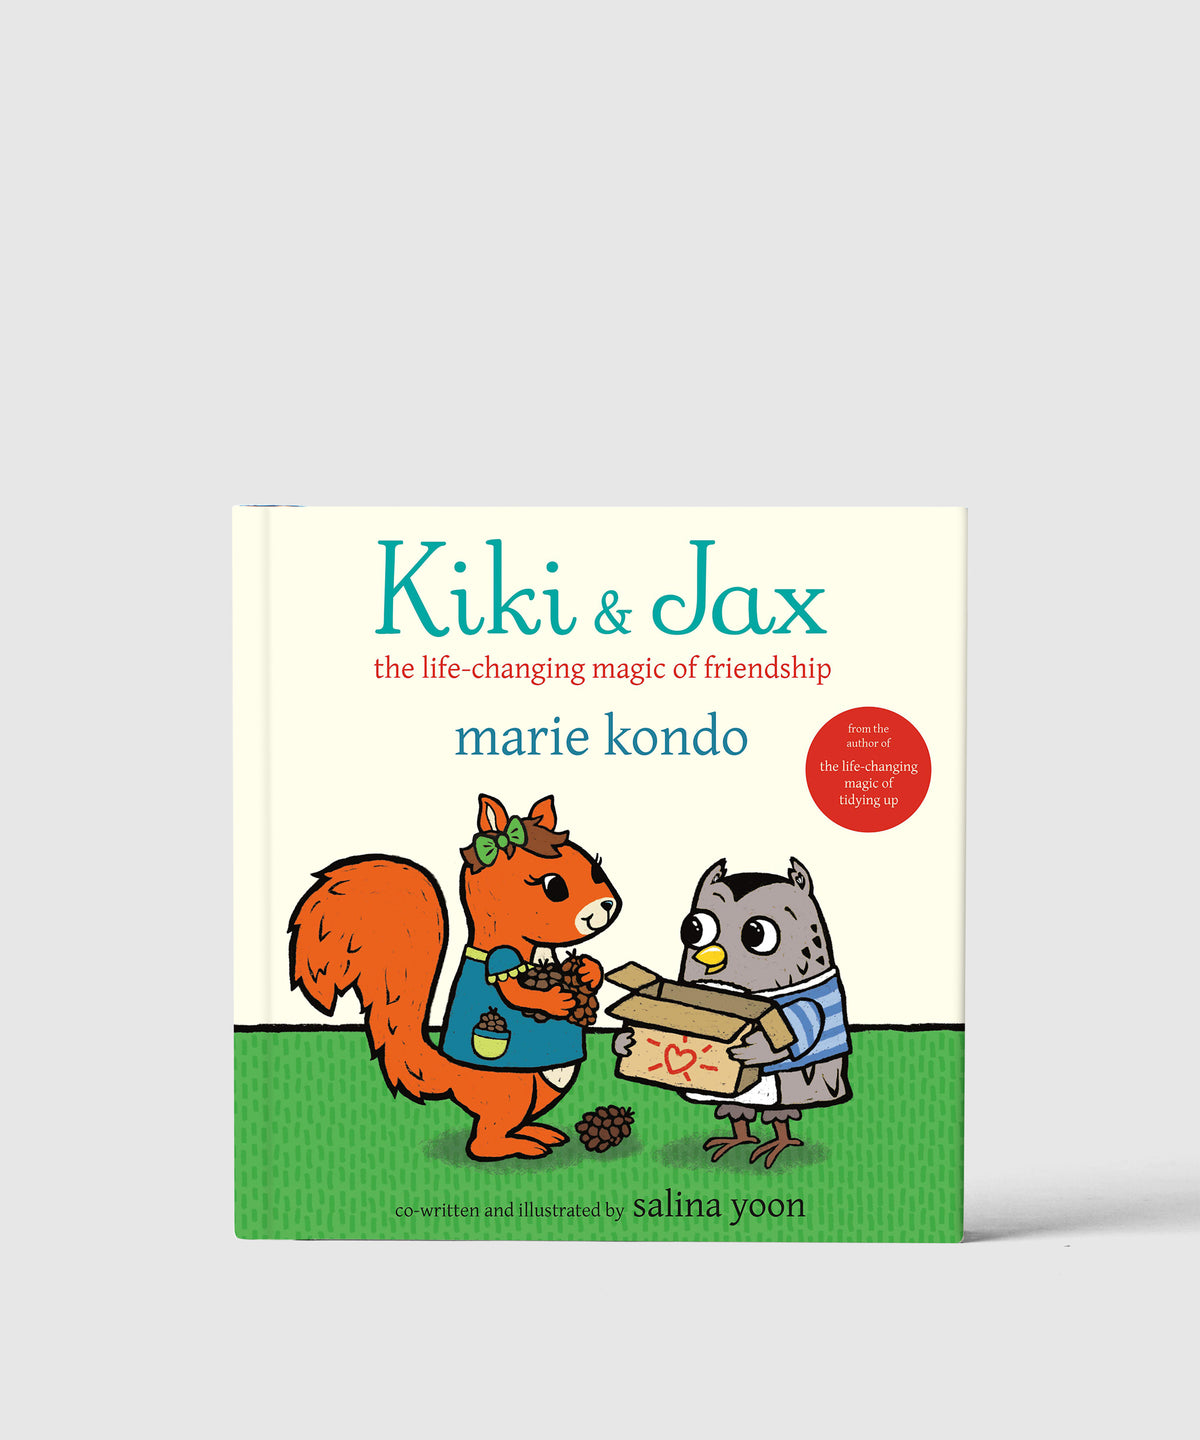 Marie Kondo's First Children's Book: 'Kiki & Jax: The Life-Changing Magic of Friendship'